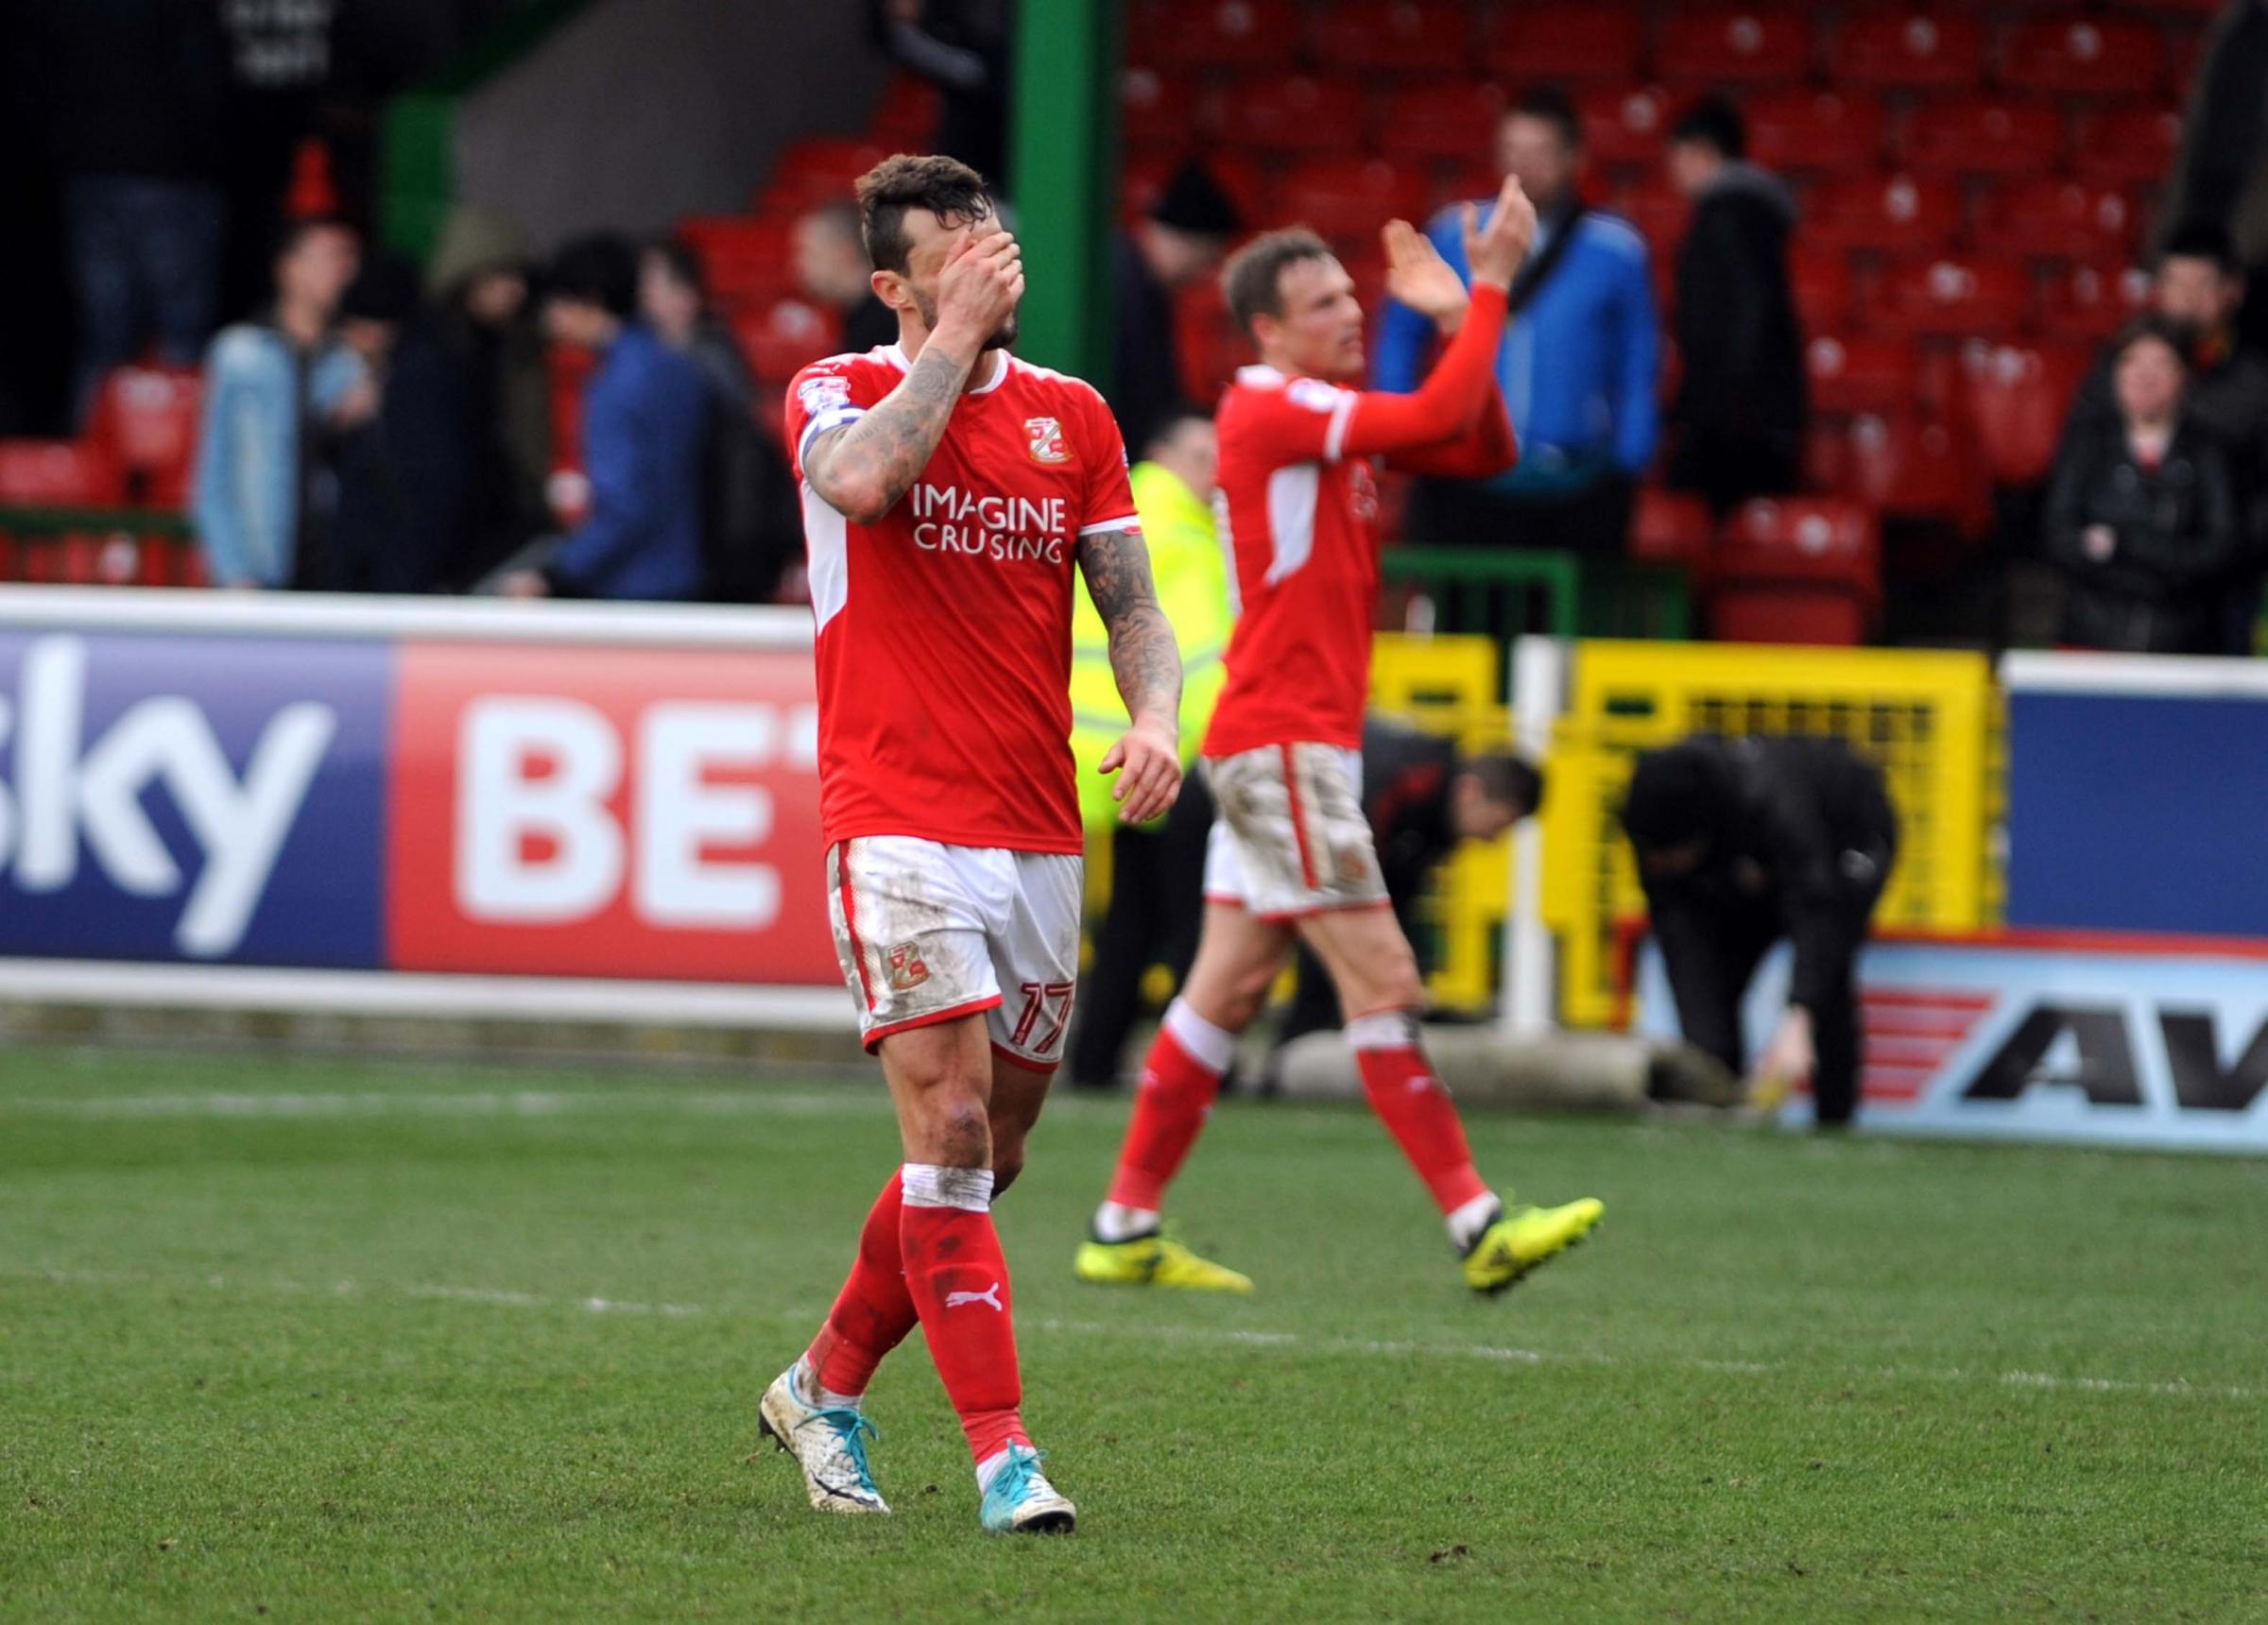 Marc Richards shows the strain after Swindon Town's home defeat to Cheltenham Town. PICTURE: DAVE EVANS